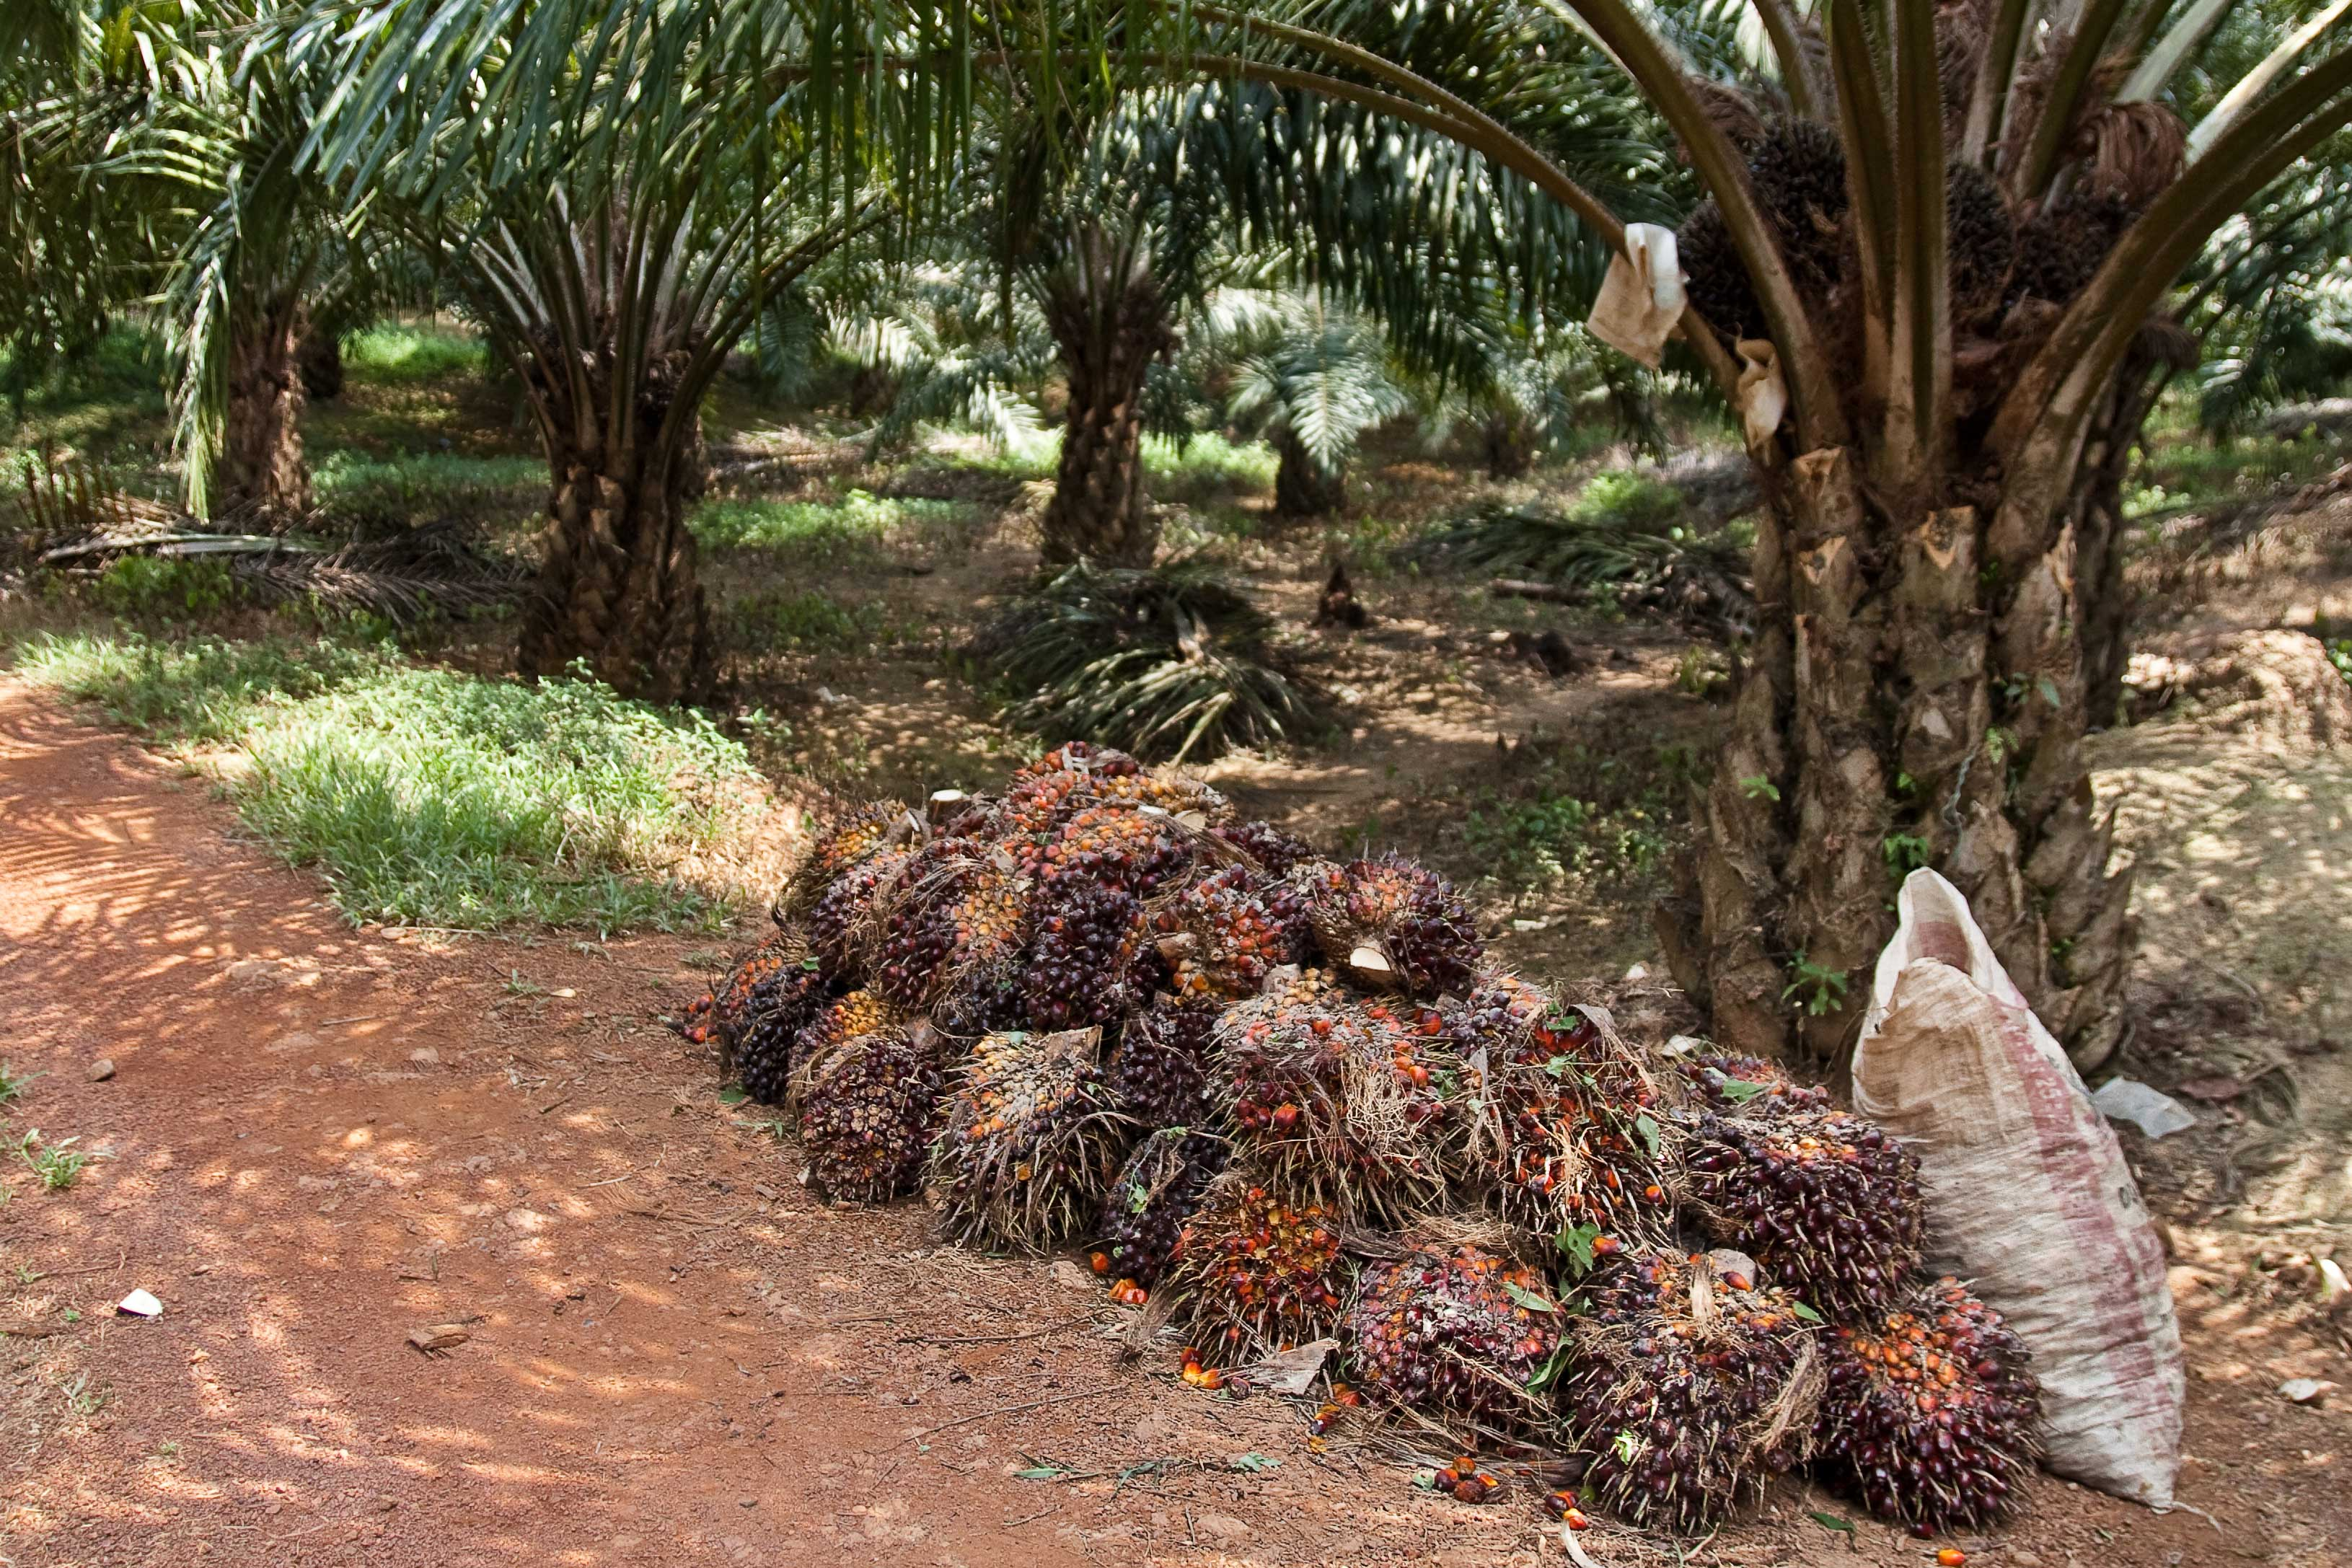 oil palm fruits at harvest